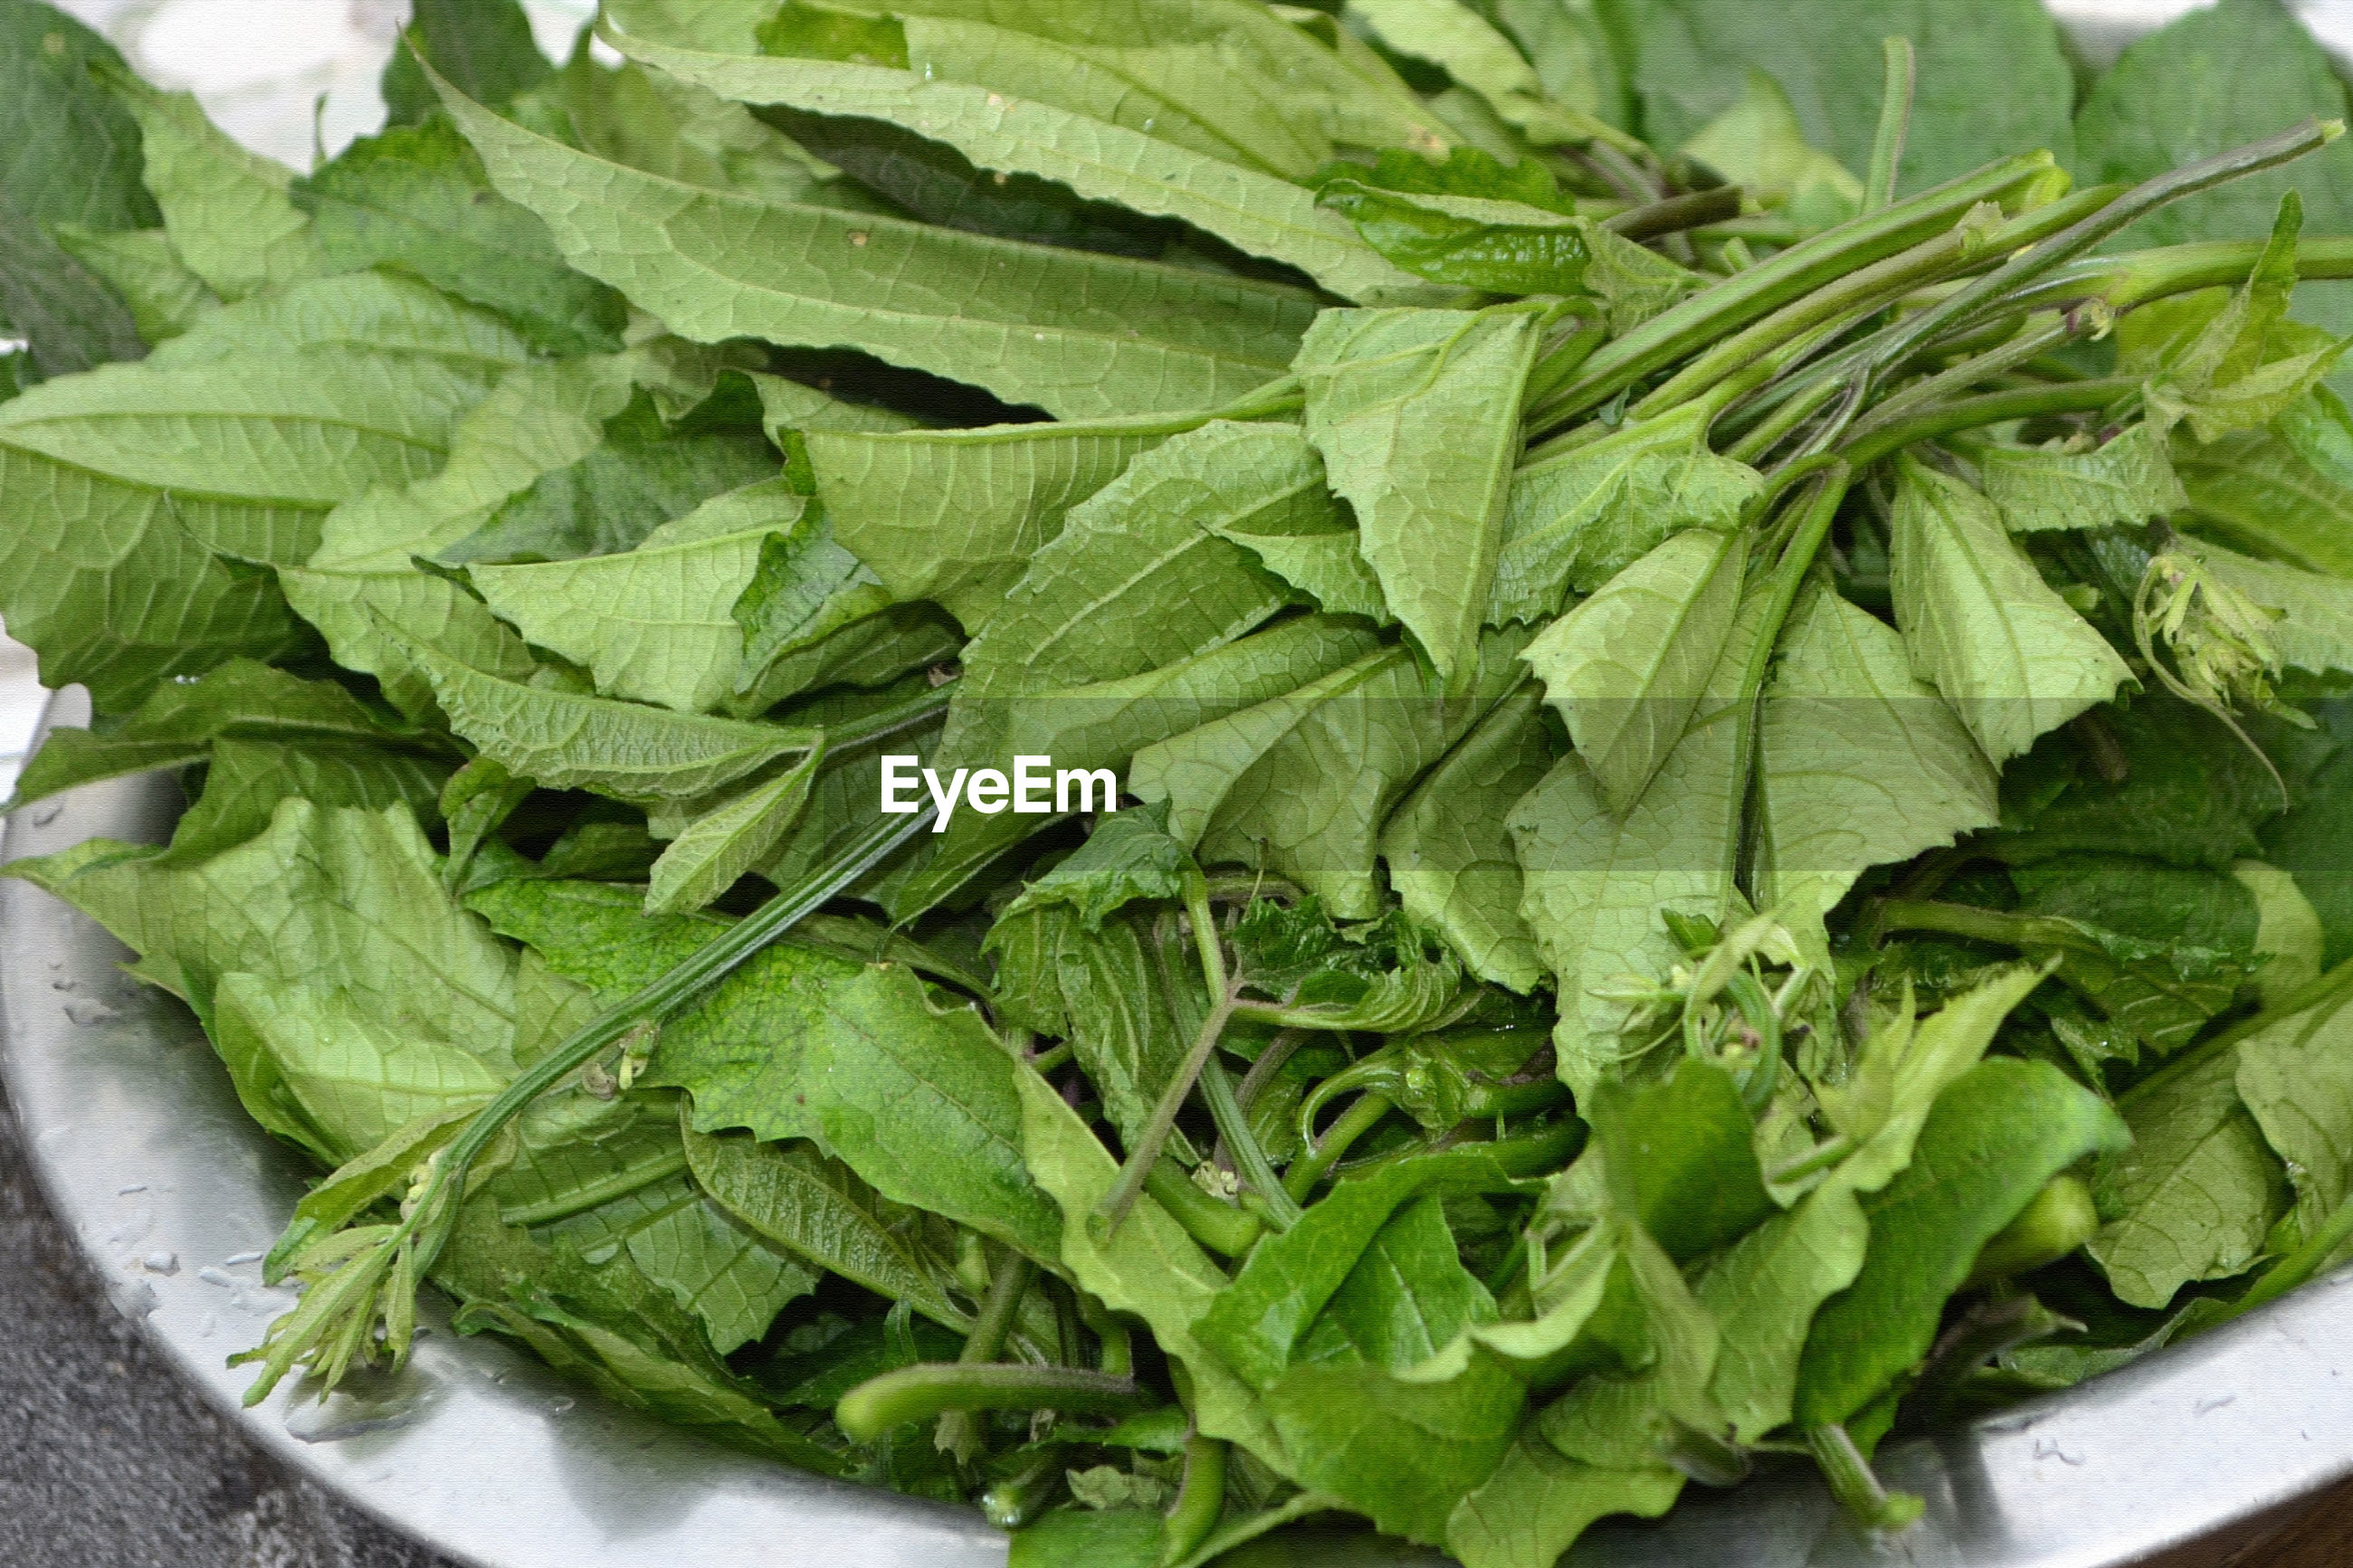 HIGH ANGLE VIEW OF GREEN LEAVES IN PLATE